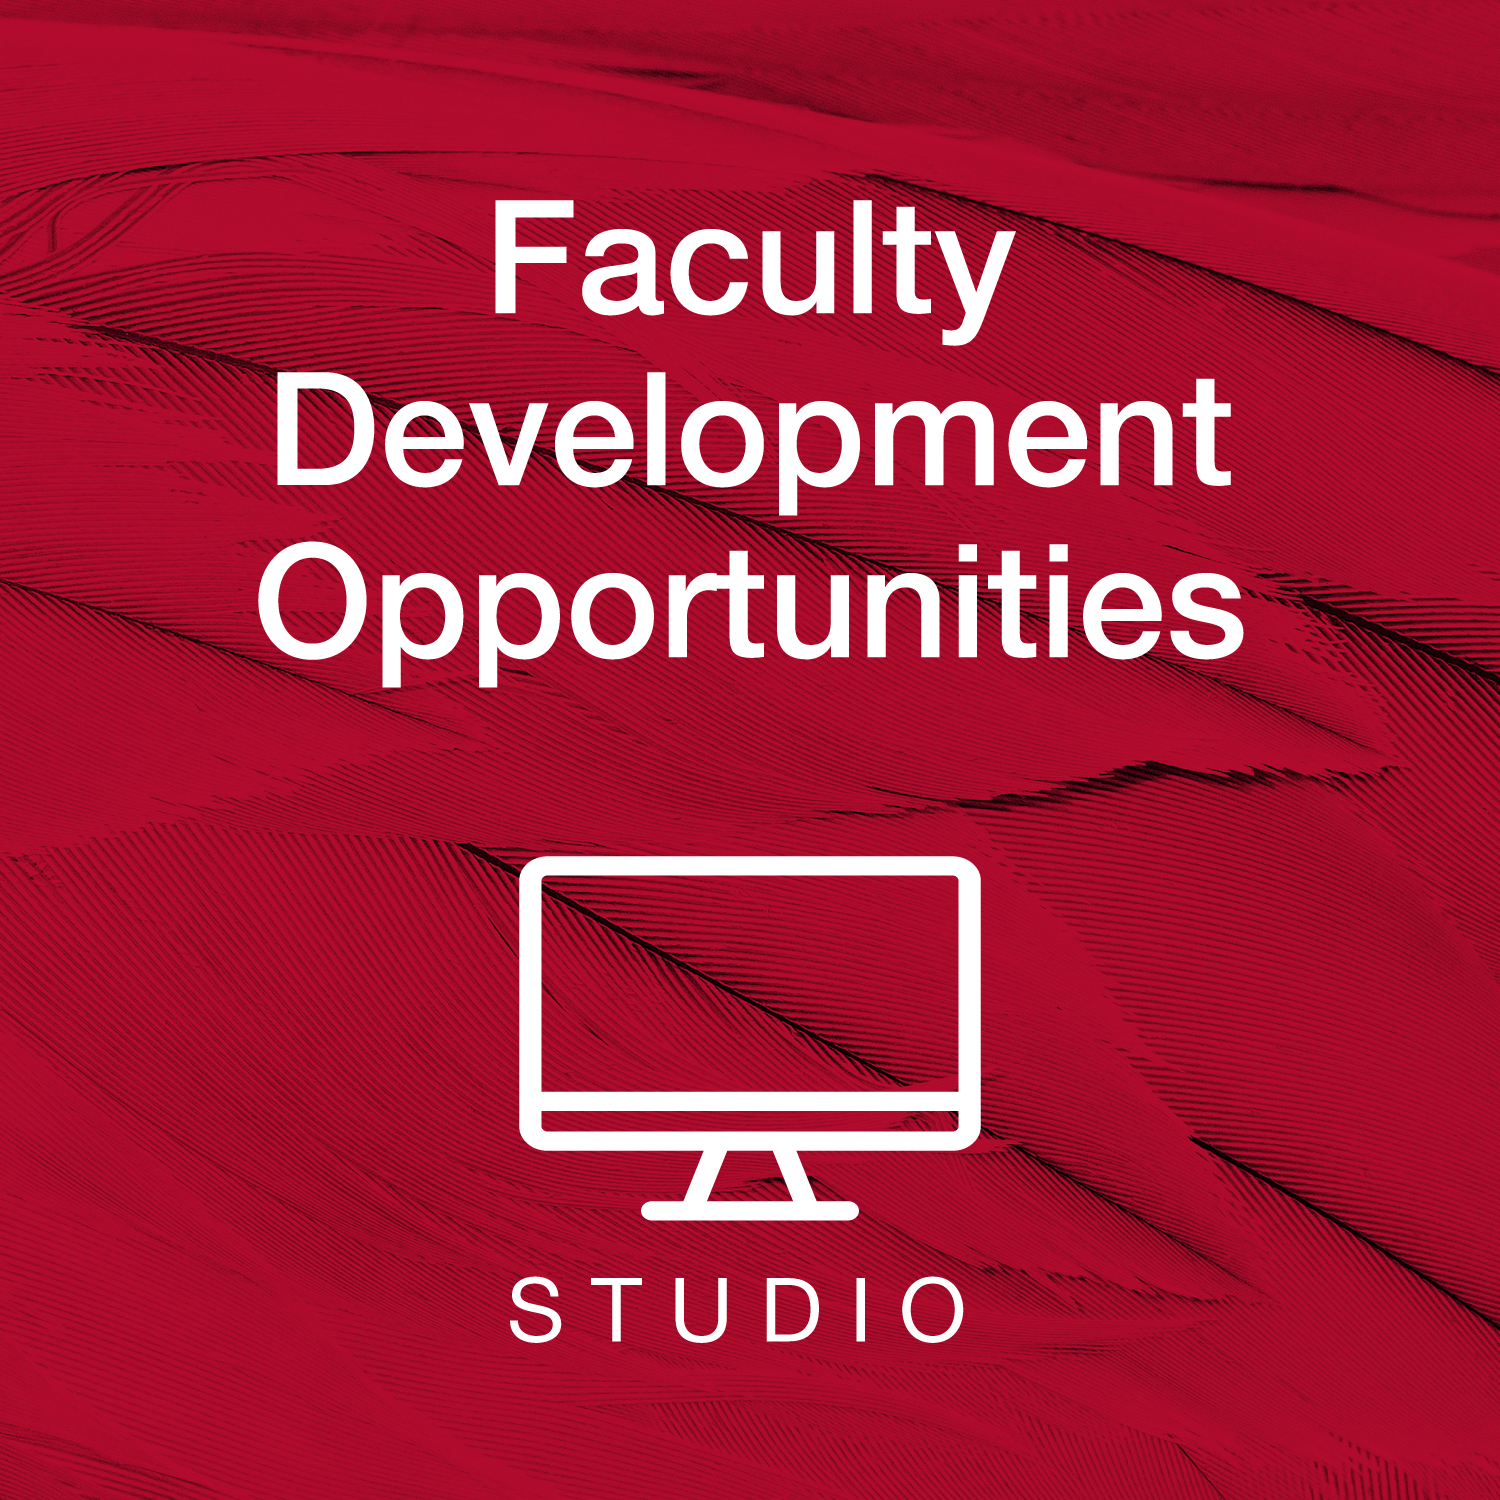 Faculty Development Opportunities - Studio